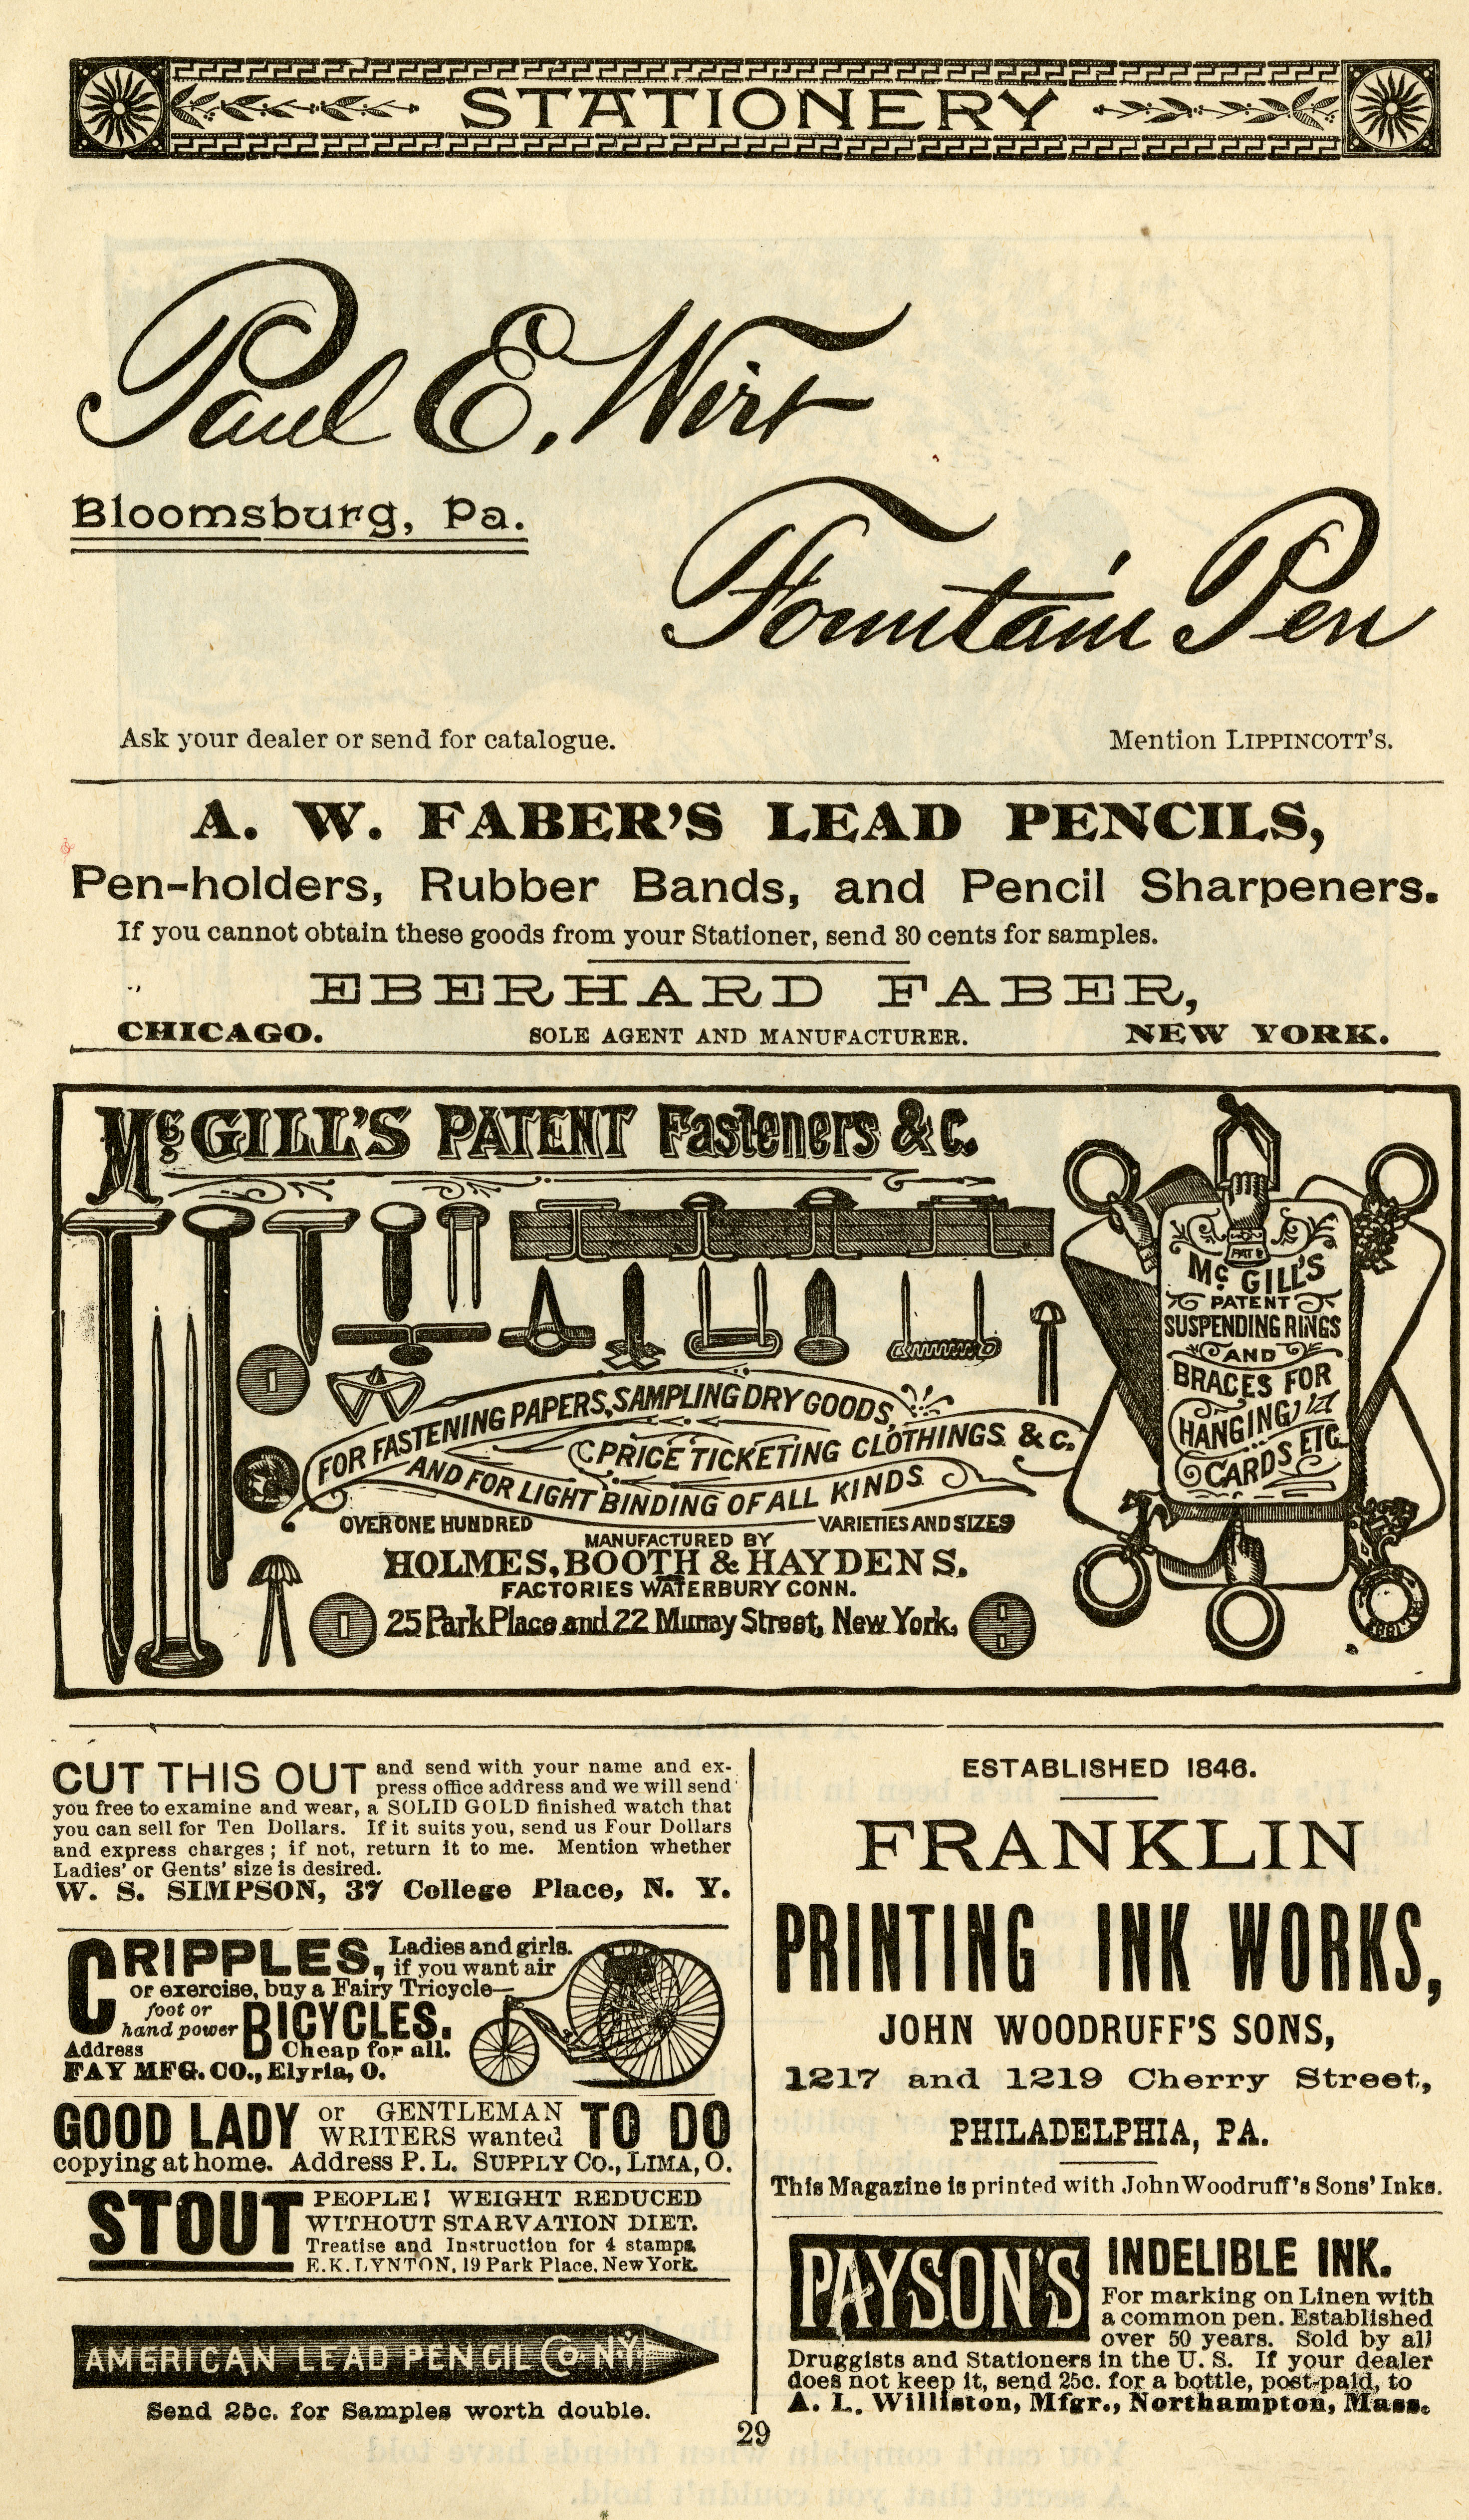 Advertisement for McGill's Patent Fasteners, manufactured by Holmes, Booth & Haydens.